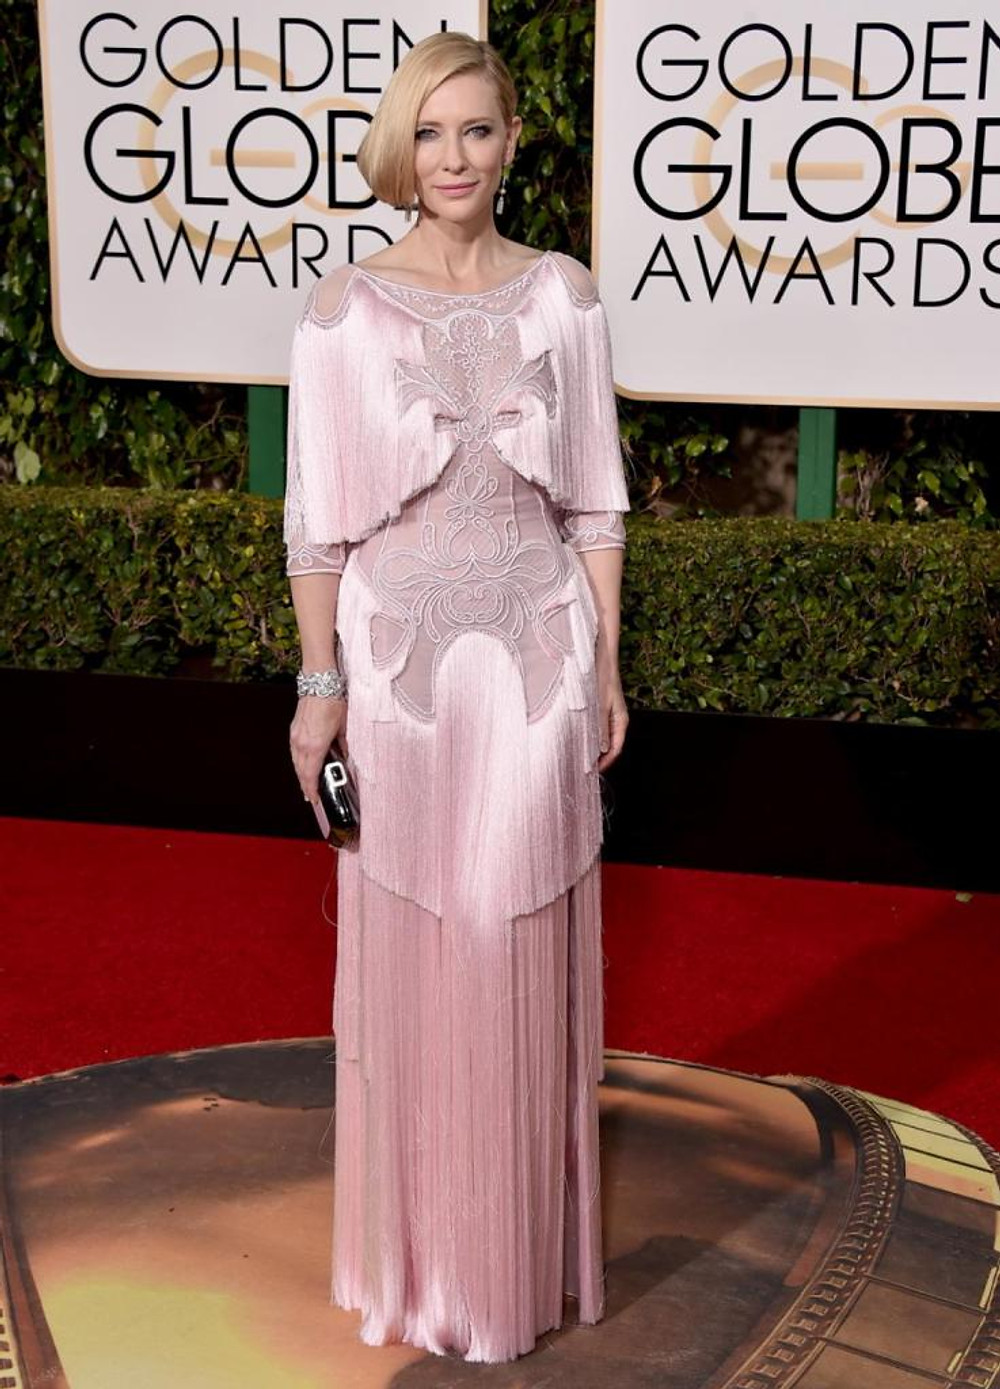 Cate Blanchett, is nominated for Best Actress in a Motion Picture Drama, donned an unusual Twenties-inspired Givenchy design complete with tassels to the 2016 Golden Globes on Jan. 10, 2016.